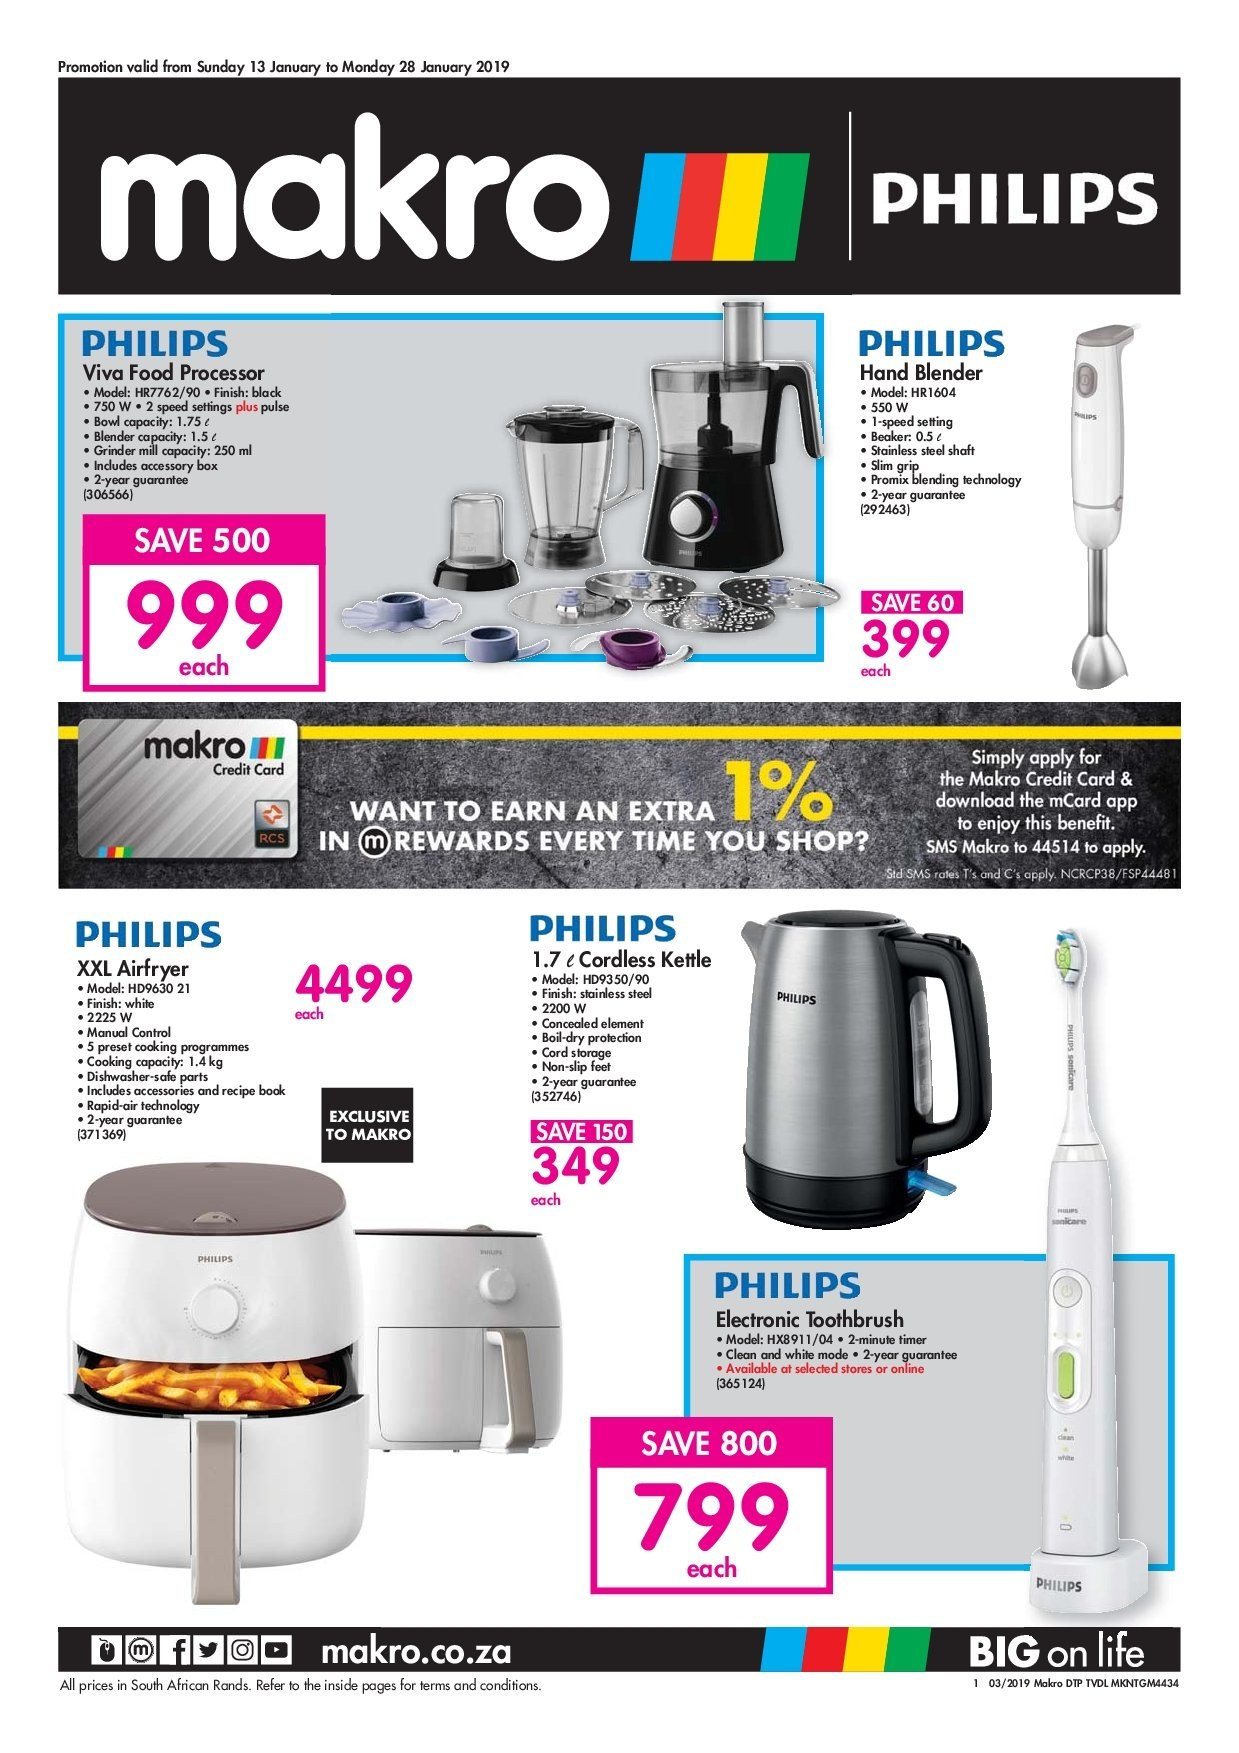 Makro special - 01.13.2019 - 01.28.2019 - Sales products - accessories, blender, bowl, box, dishwasher, safe, stainless, storage, timer, toothbrush, philips, processor, grinder, kettle, food processor. Page 1.